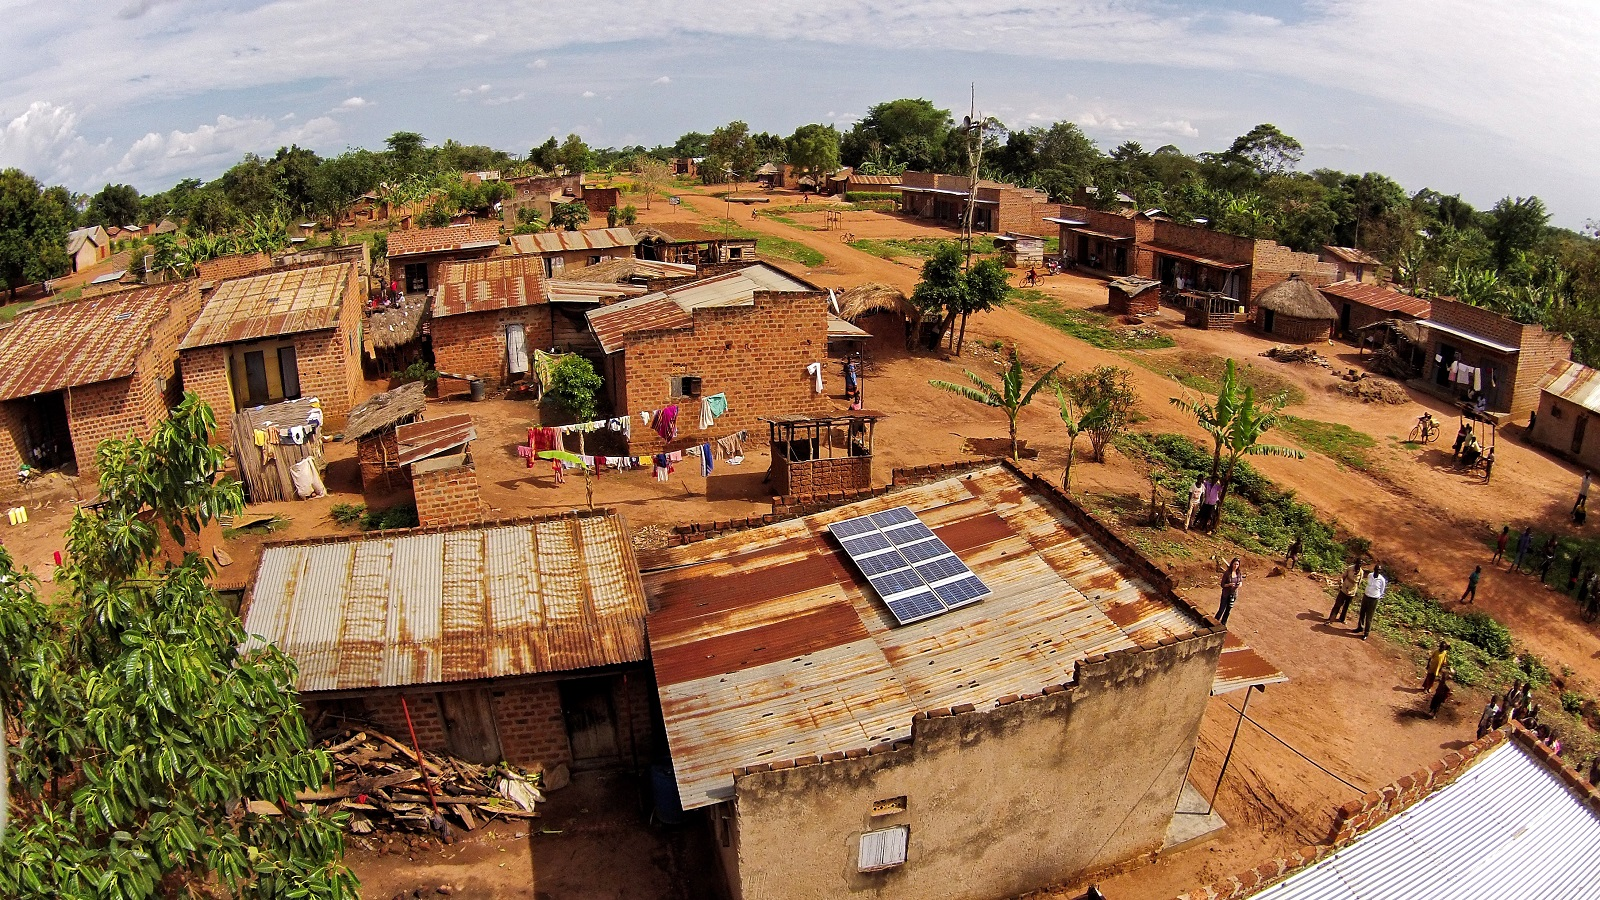 Smarter due diligence processes could help investment flow into rural electrification projects once again. Image: SunFunder.